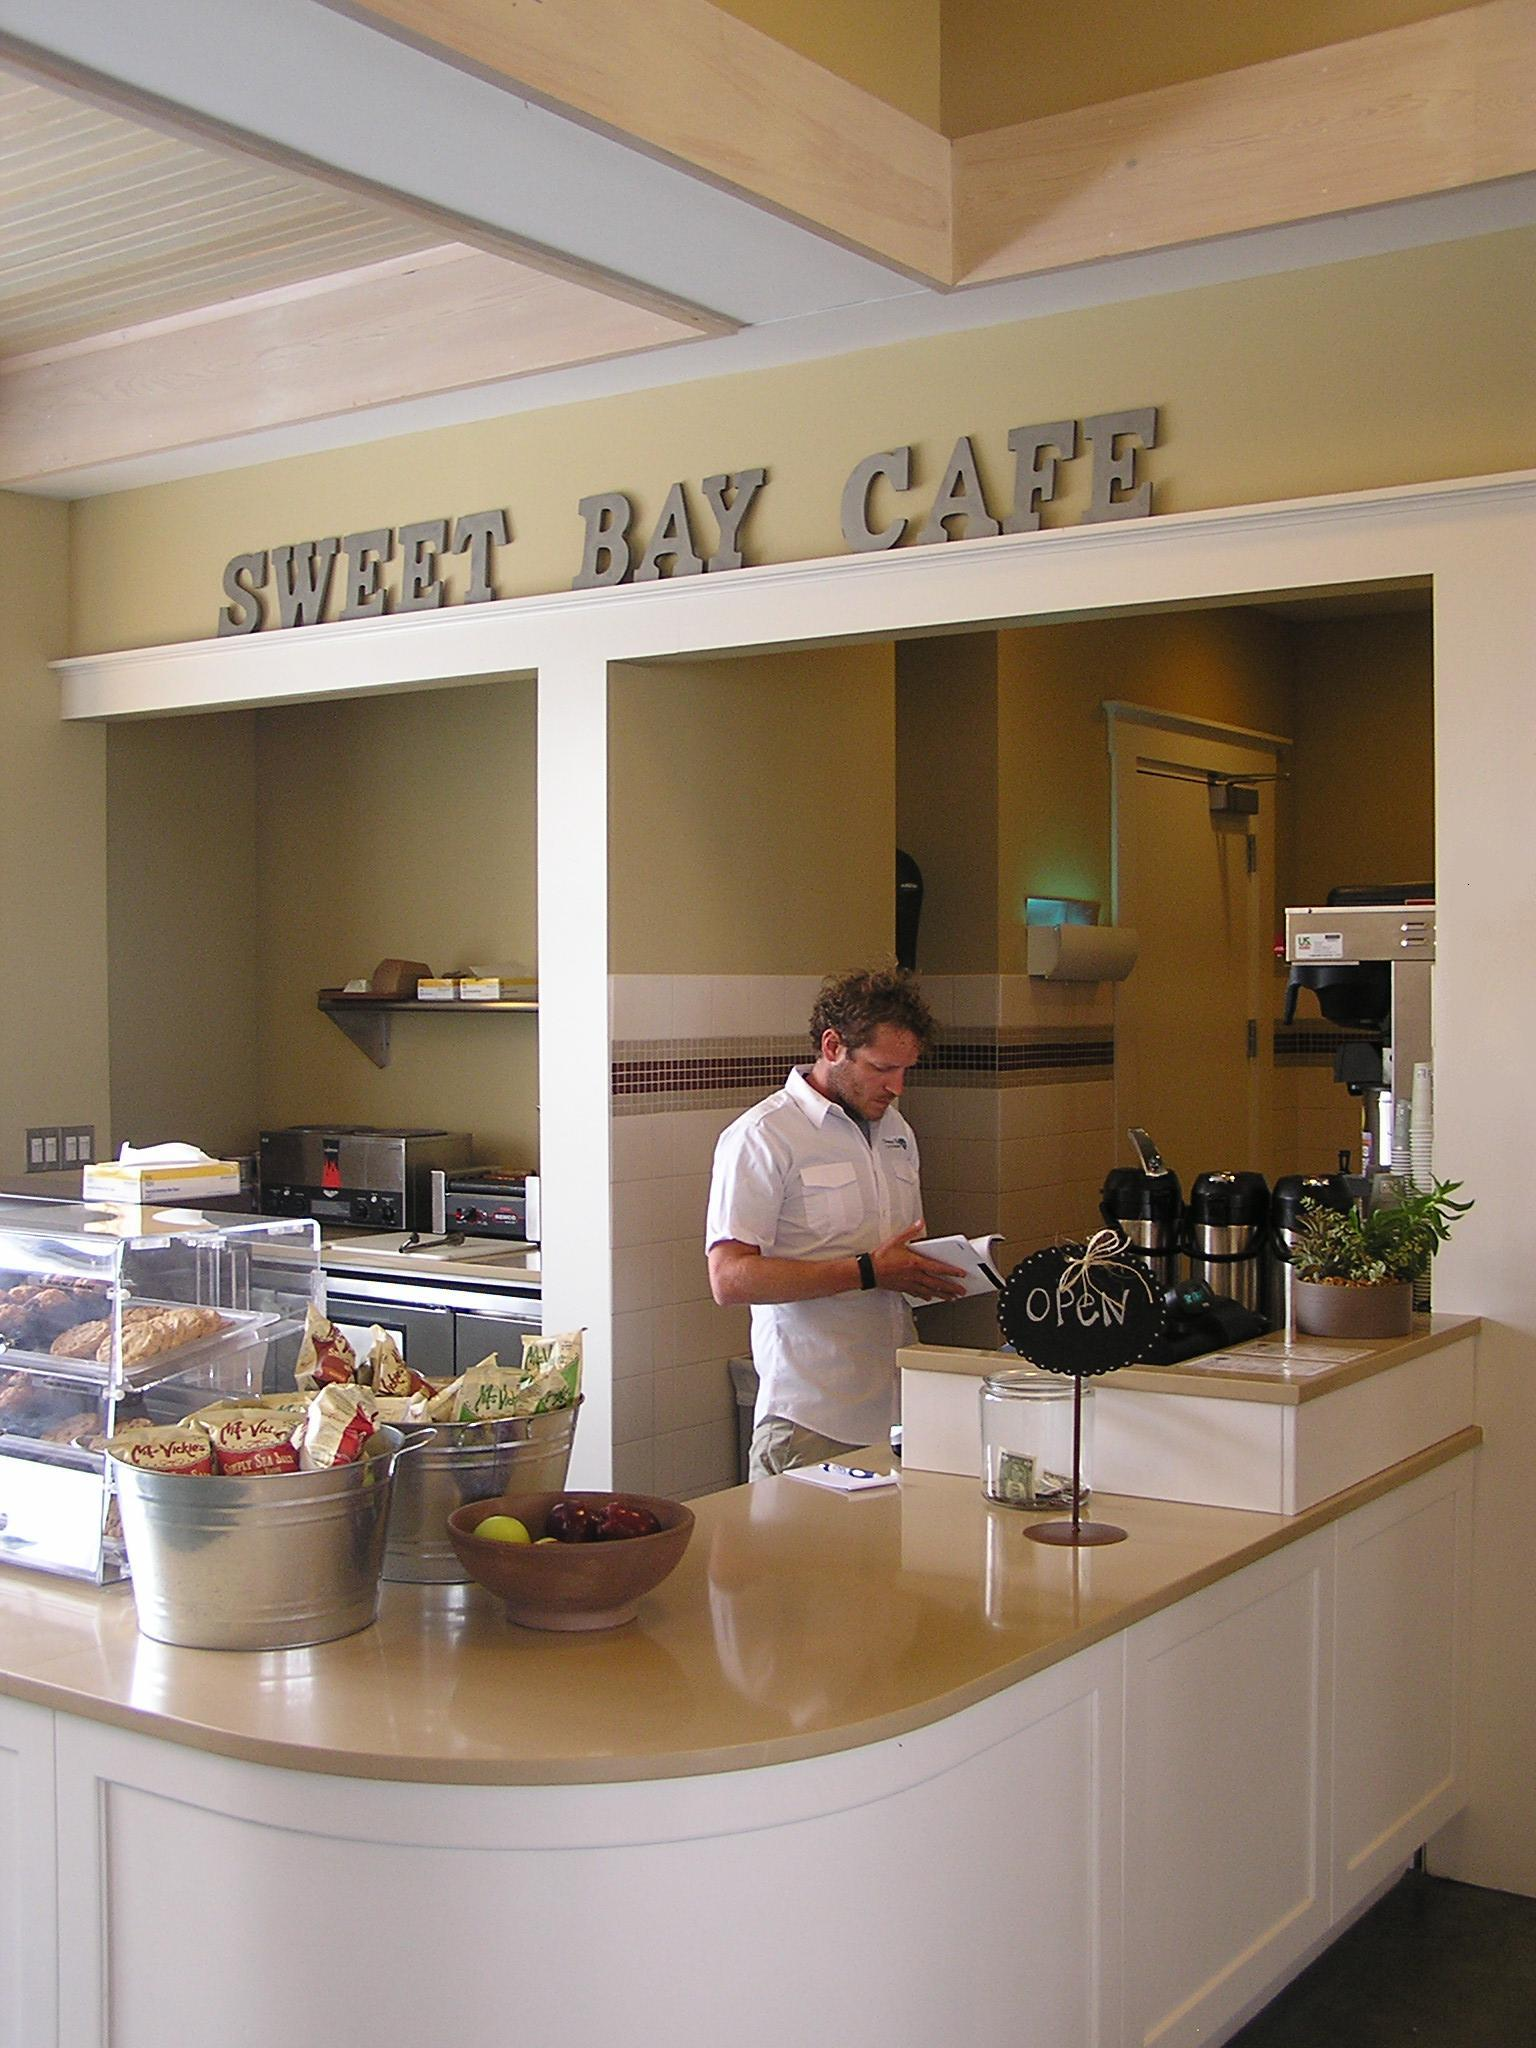 Sweet Bay Cafe Open at Deep Point Marina